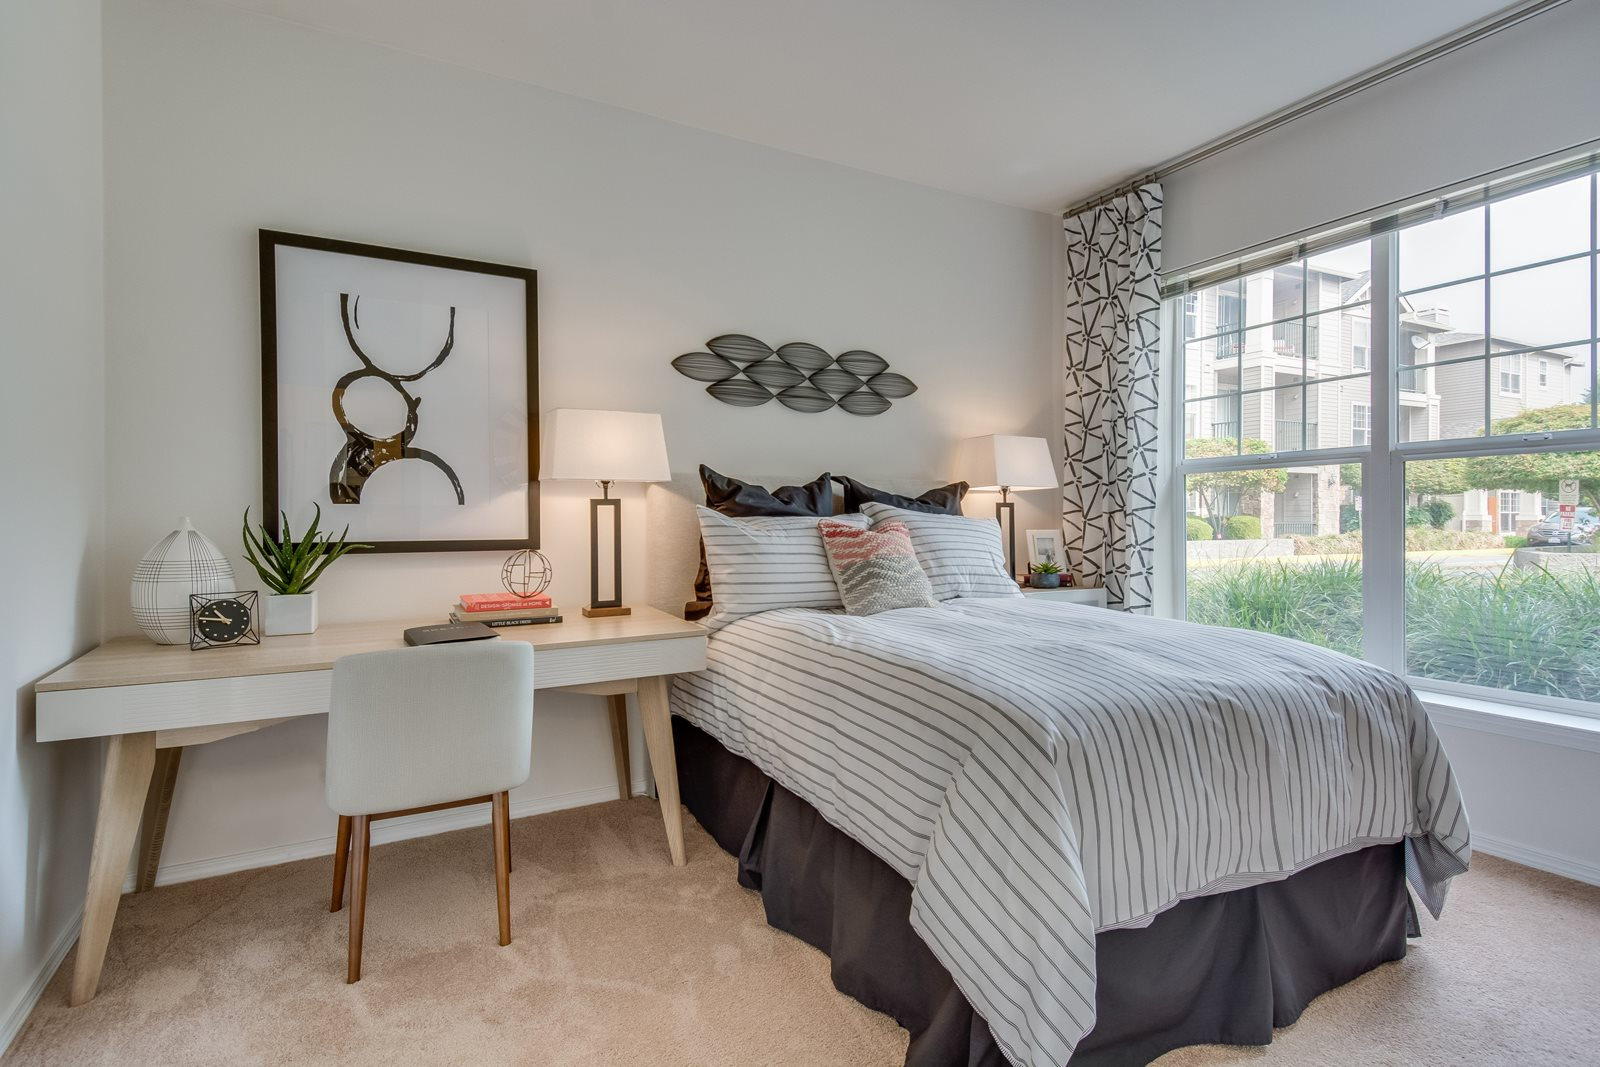 Spacious bedrooms with lots of natural light at Reflections by Windsor, Redmond, WA